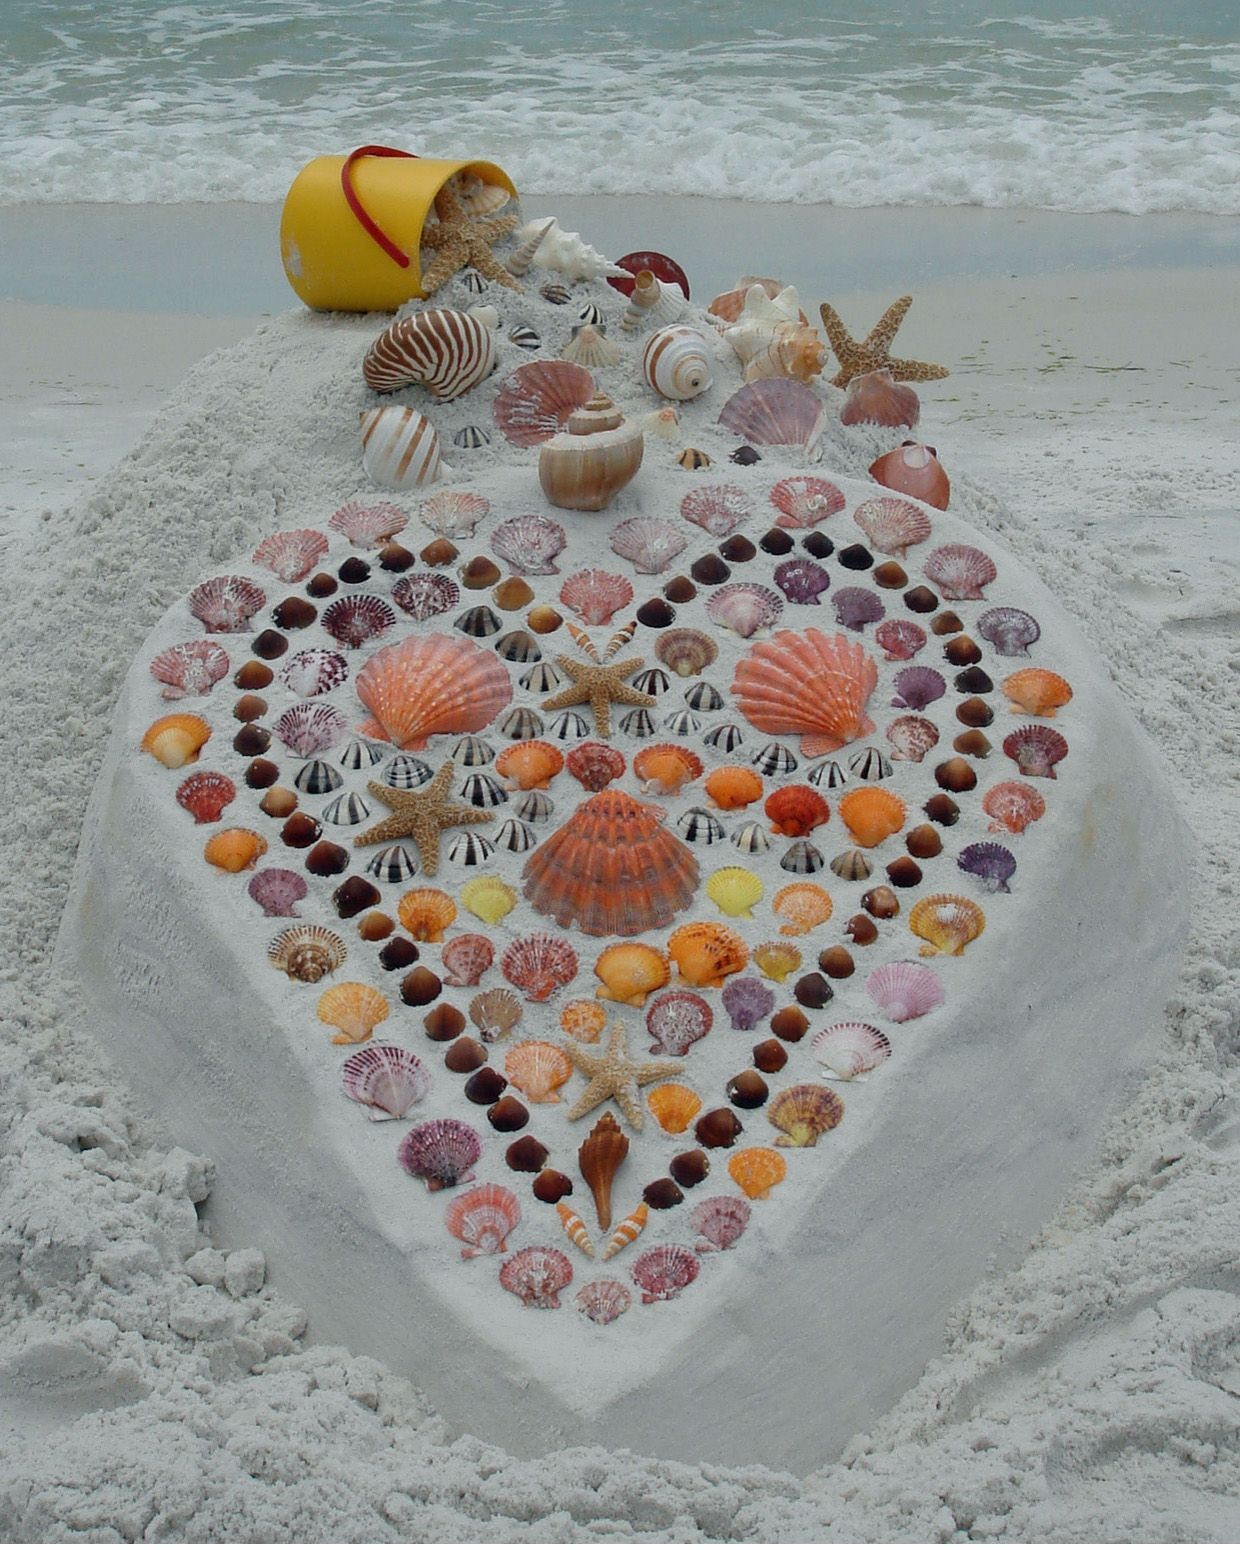 Cool - Seashell heart by wendy